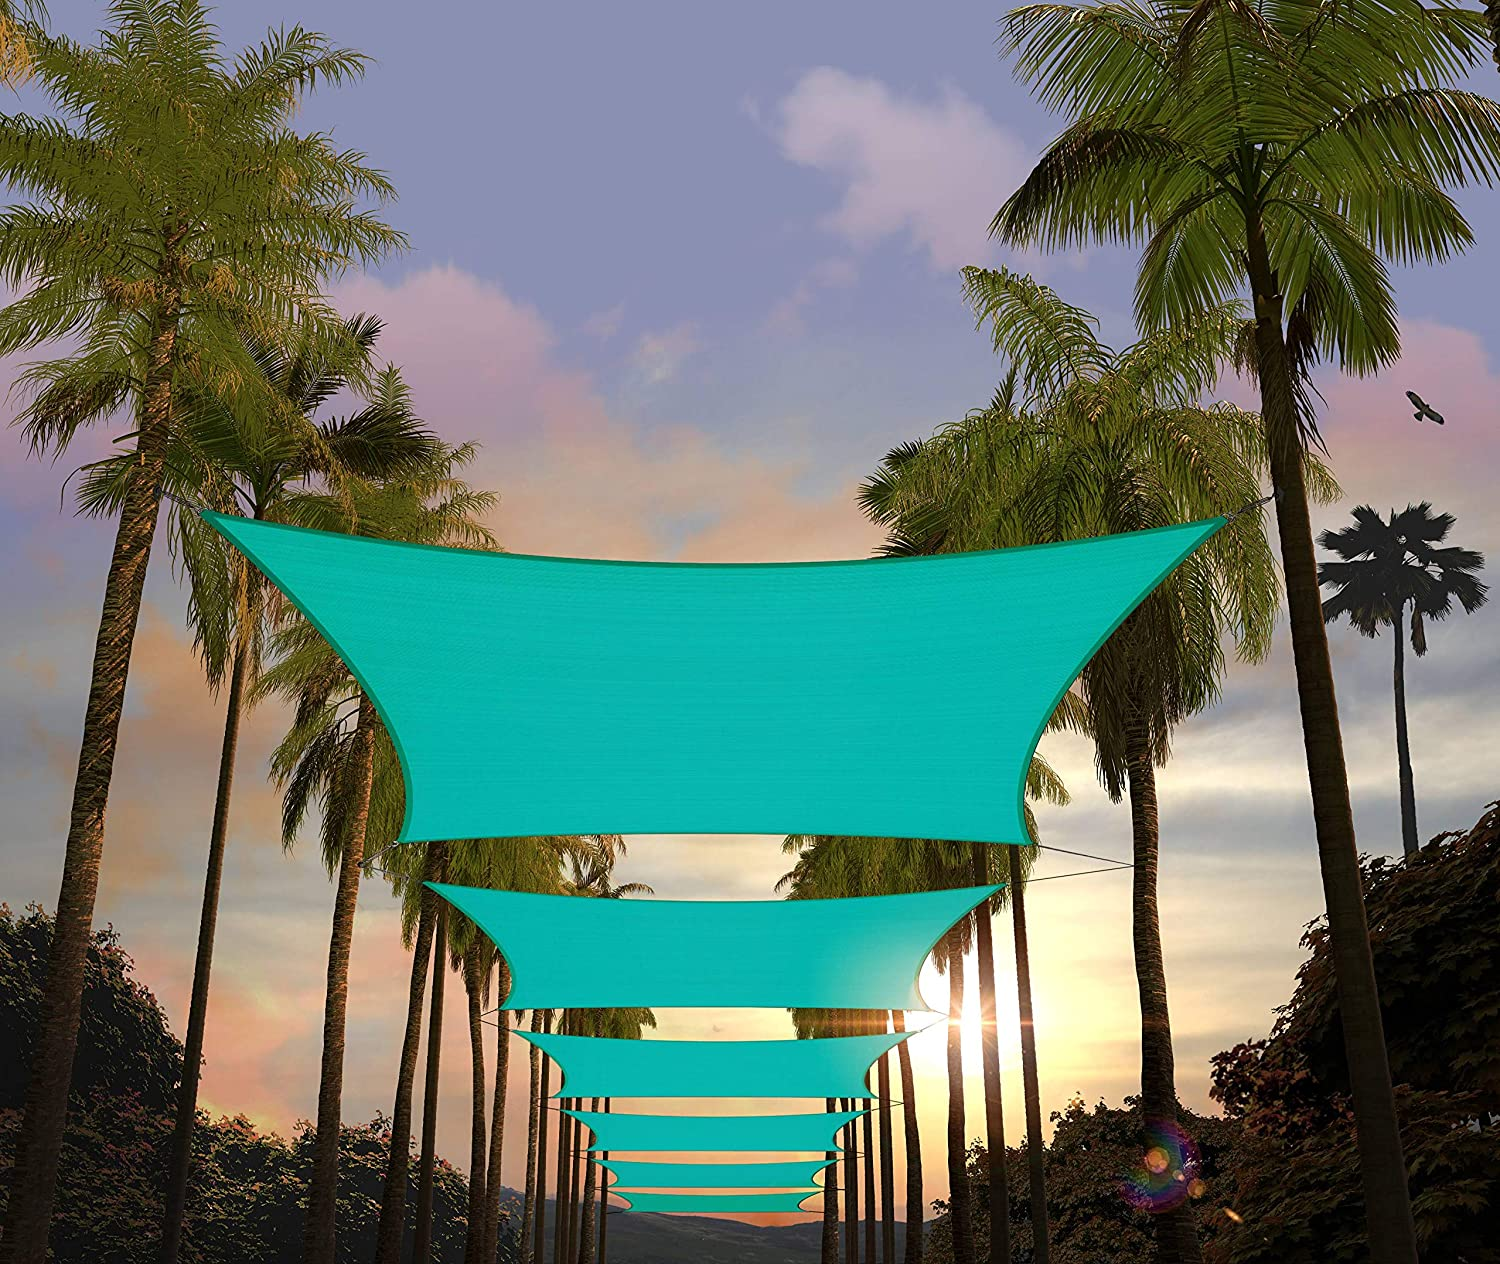 Amgo 8' x 10' Turquoise Rectangle Sun Shade Sail Canopy Awning ATAPR0810, 95% UV Blockage, Water & Air Permeable, Commercial and Residential (Custom